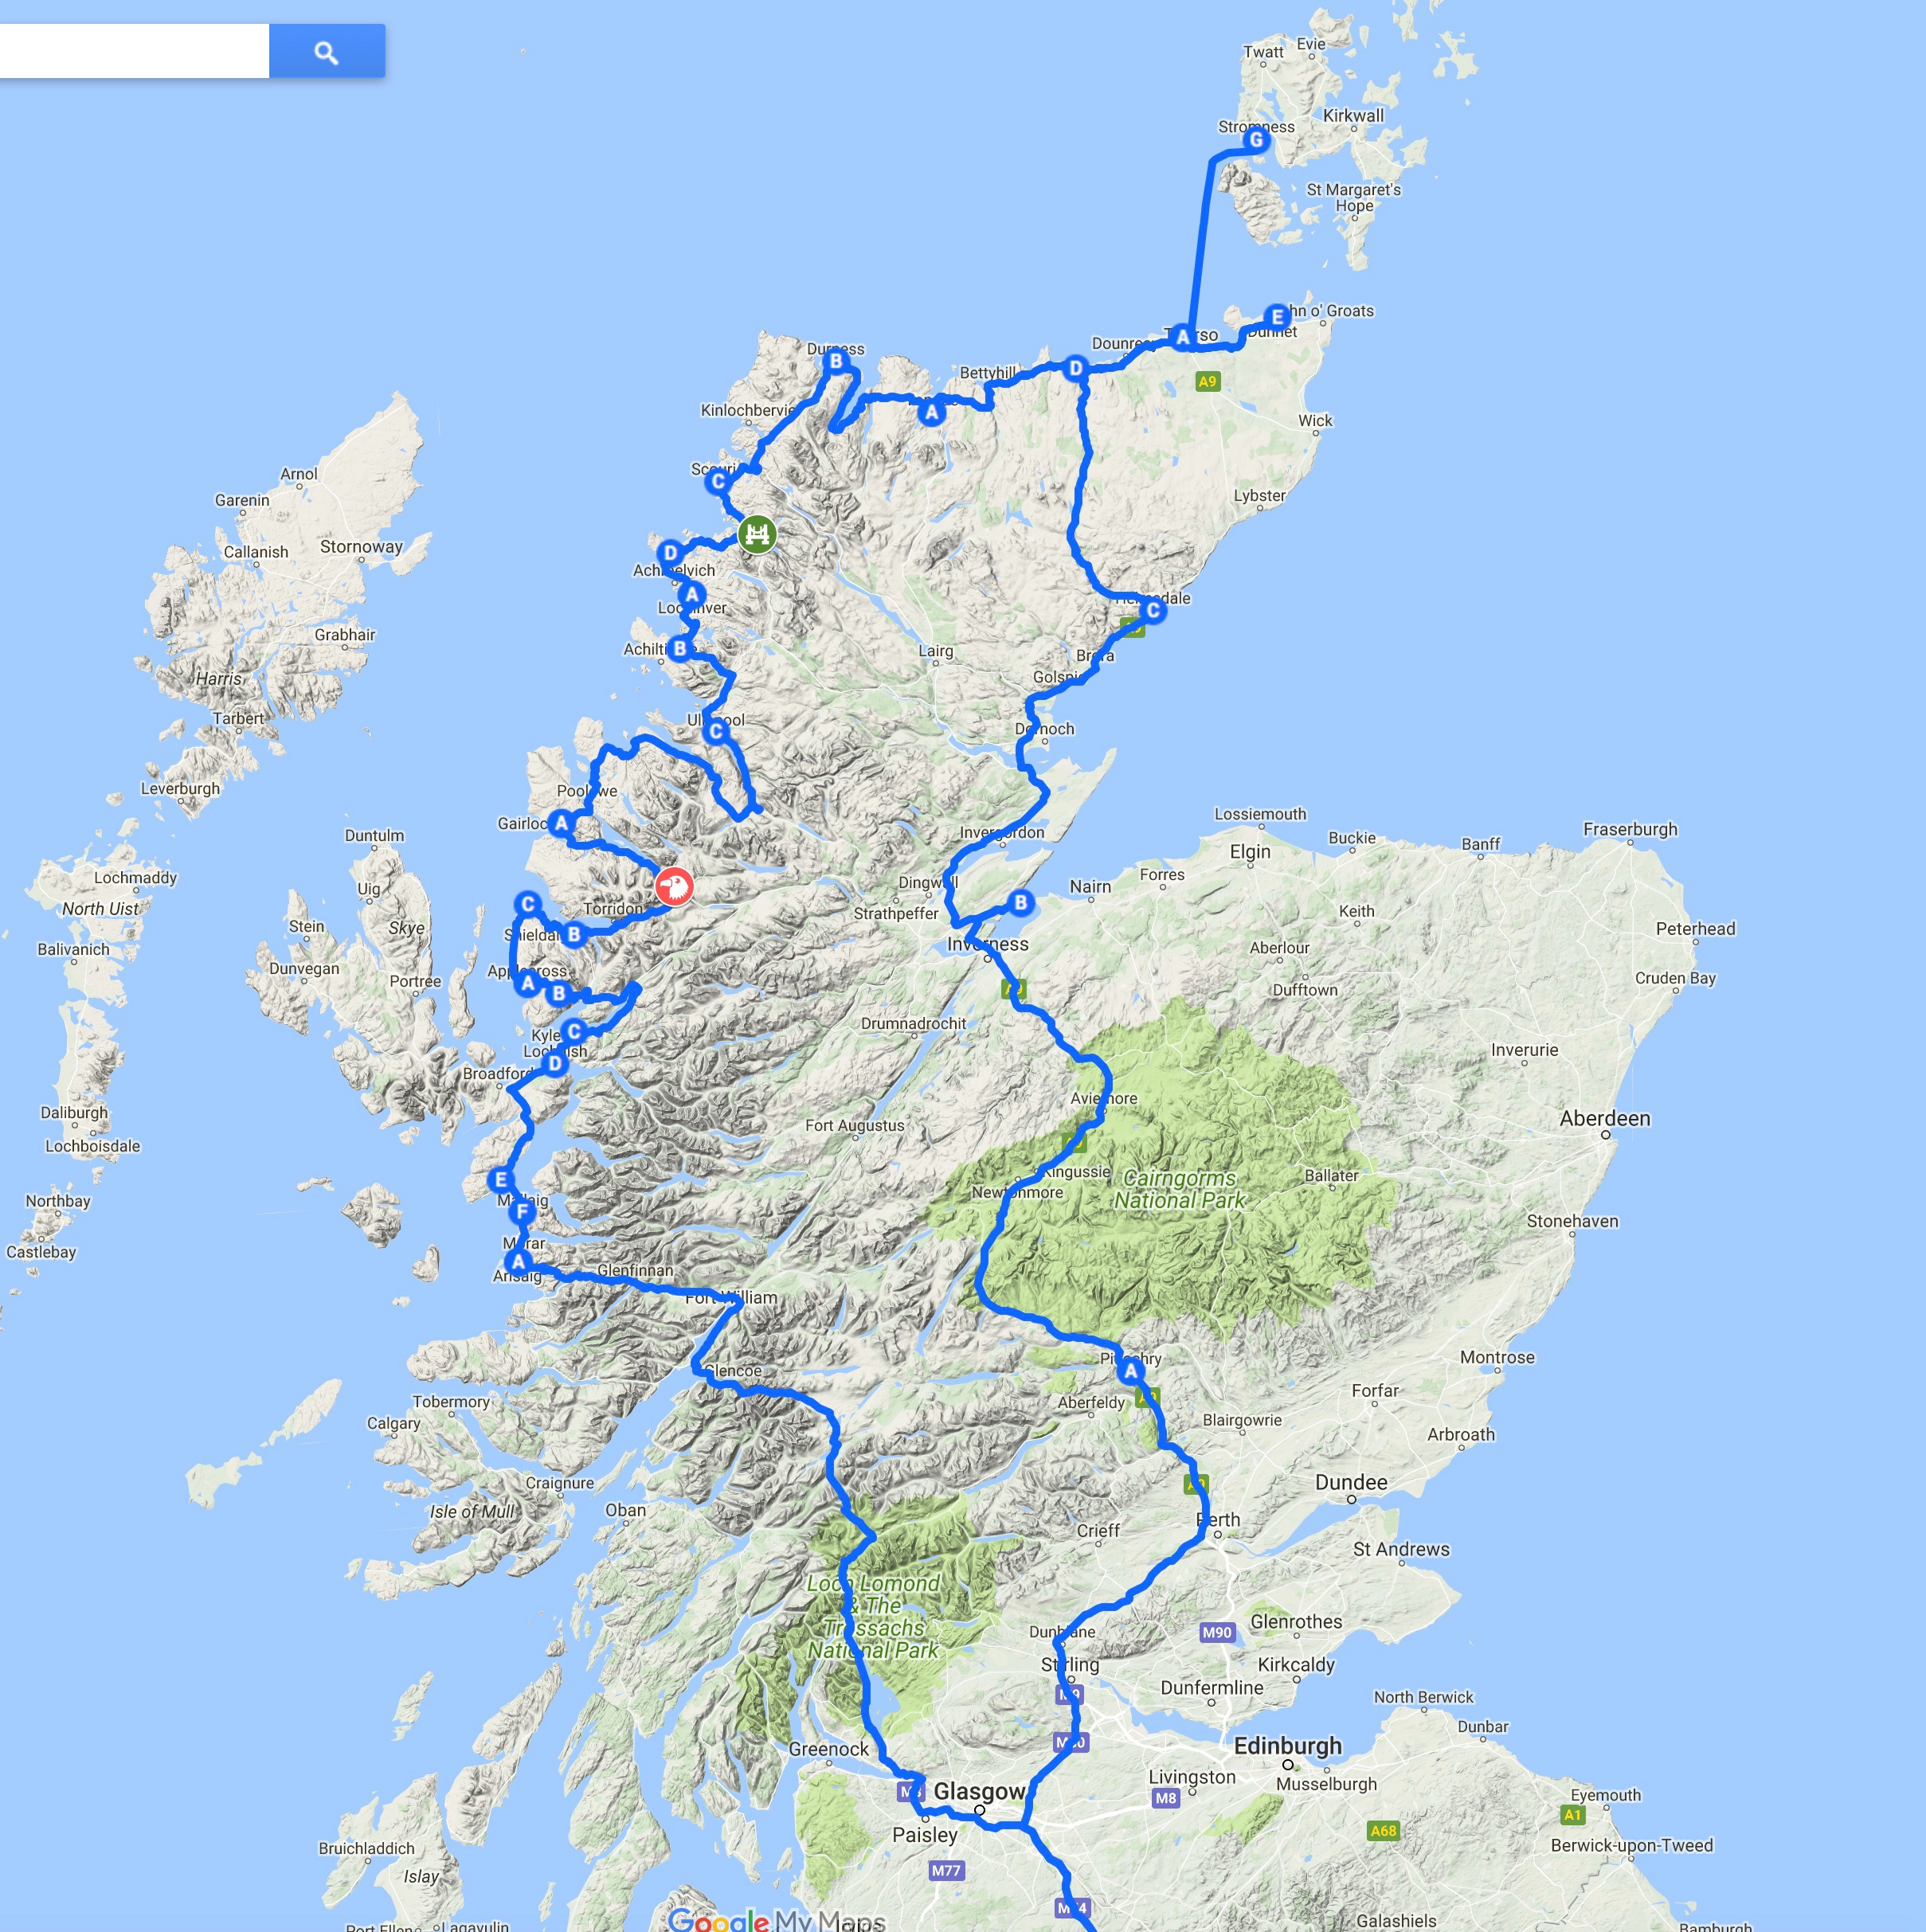 NC500 Map.jpeg